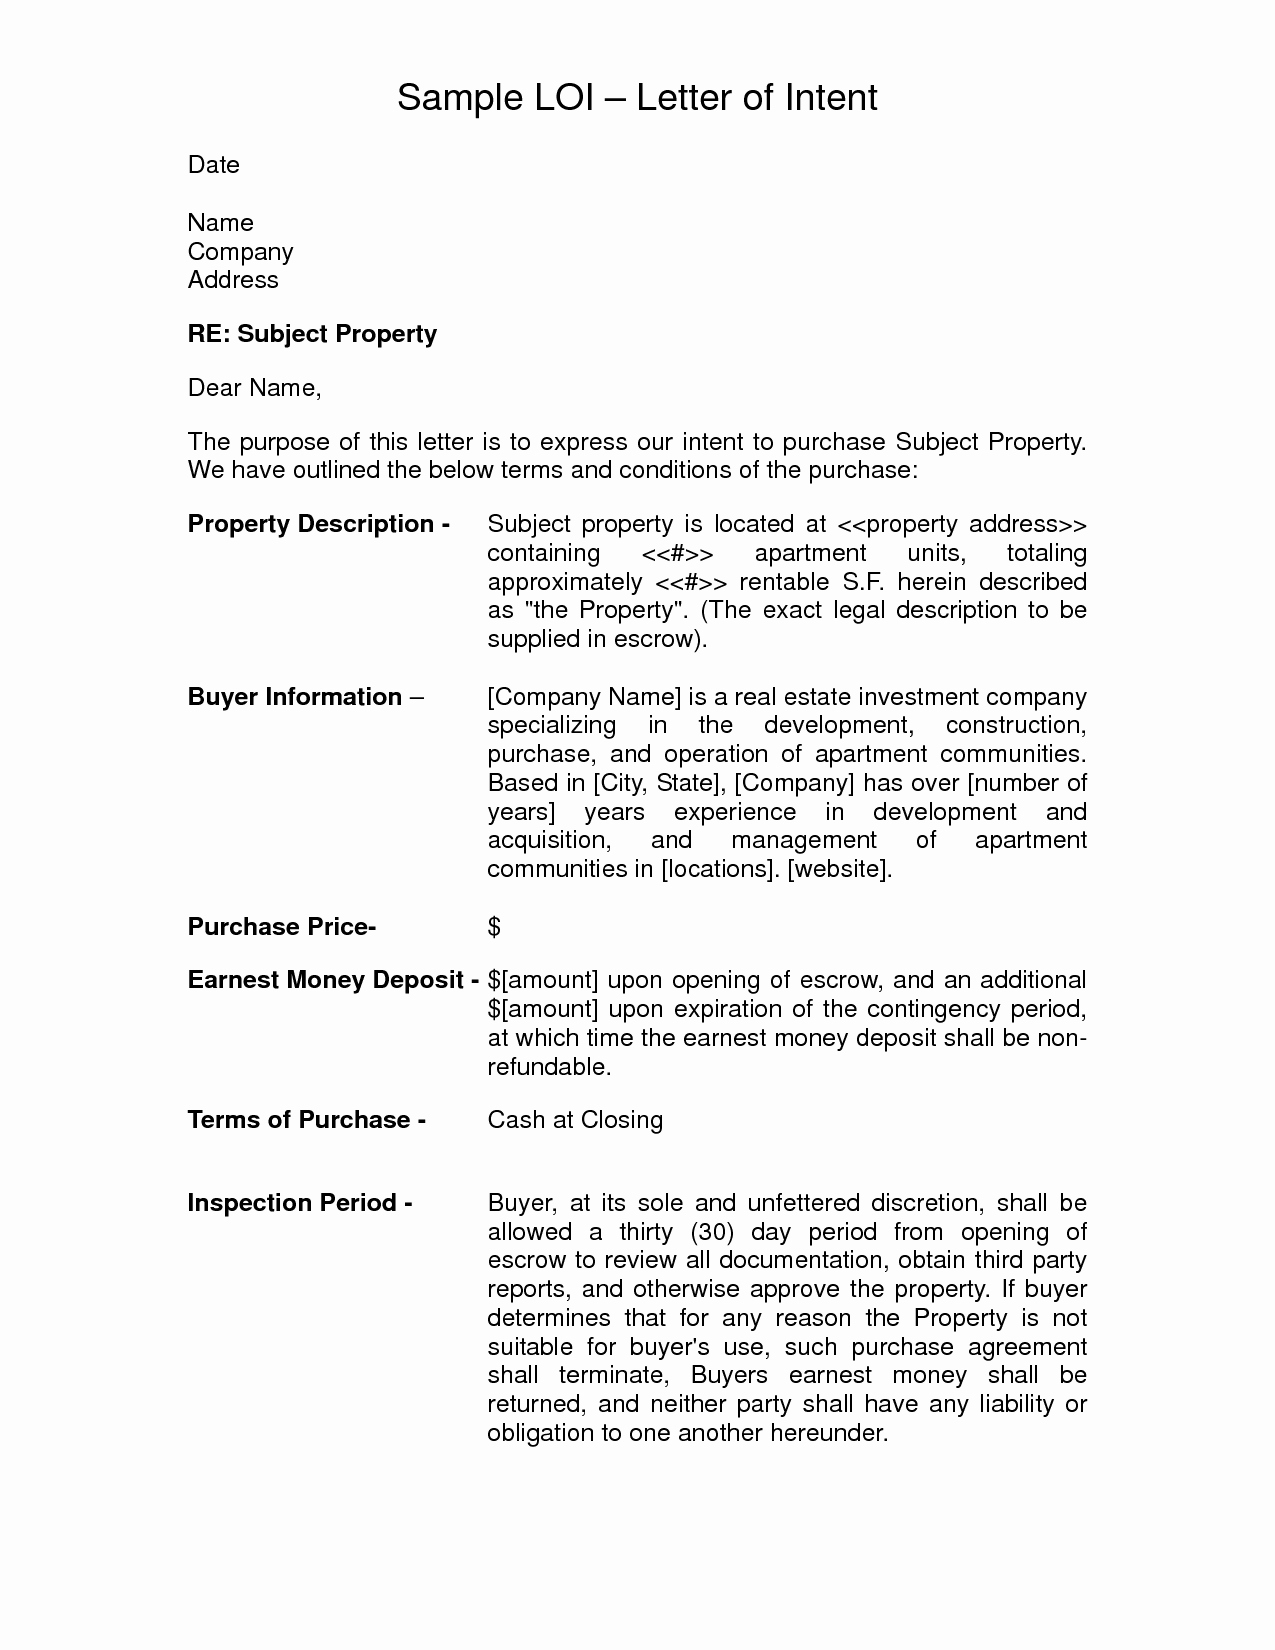 letter of intent to purchase real estate template example-Letter Intent to Purchase Property Template Beautiful Letter Intent to Purchasety Image Highest Clarity Mercial 1-g